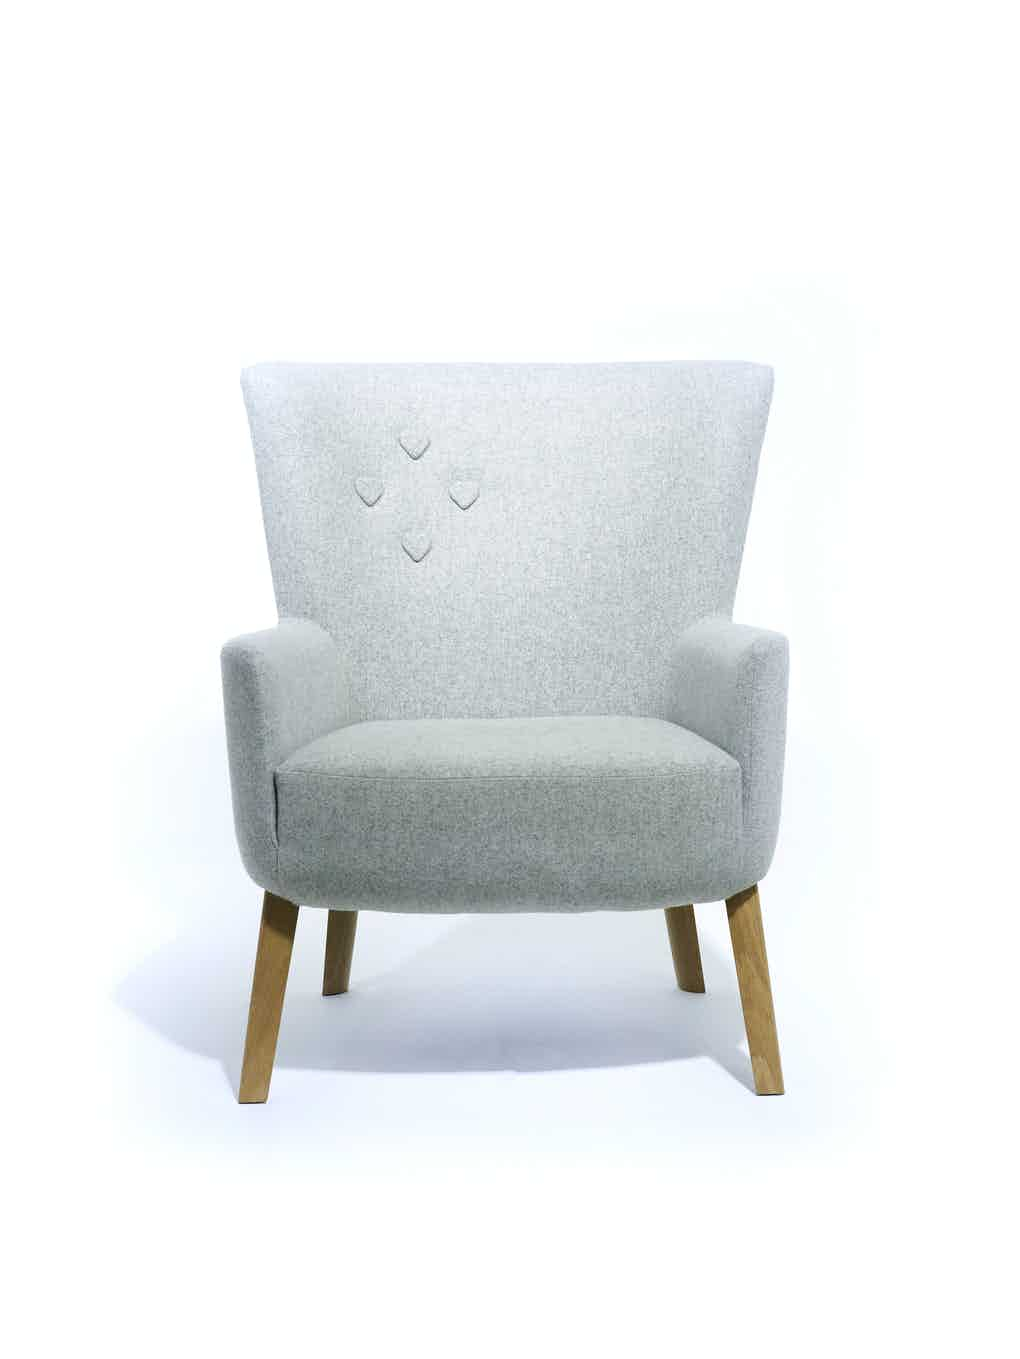 Deadgood-love-chair-hearts-haute-living